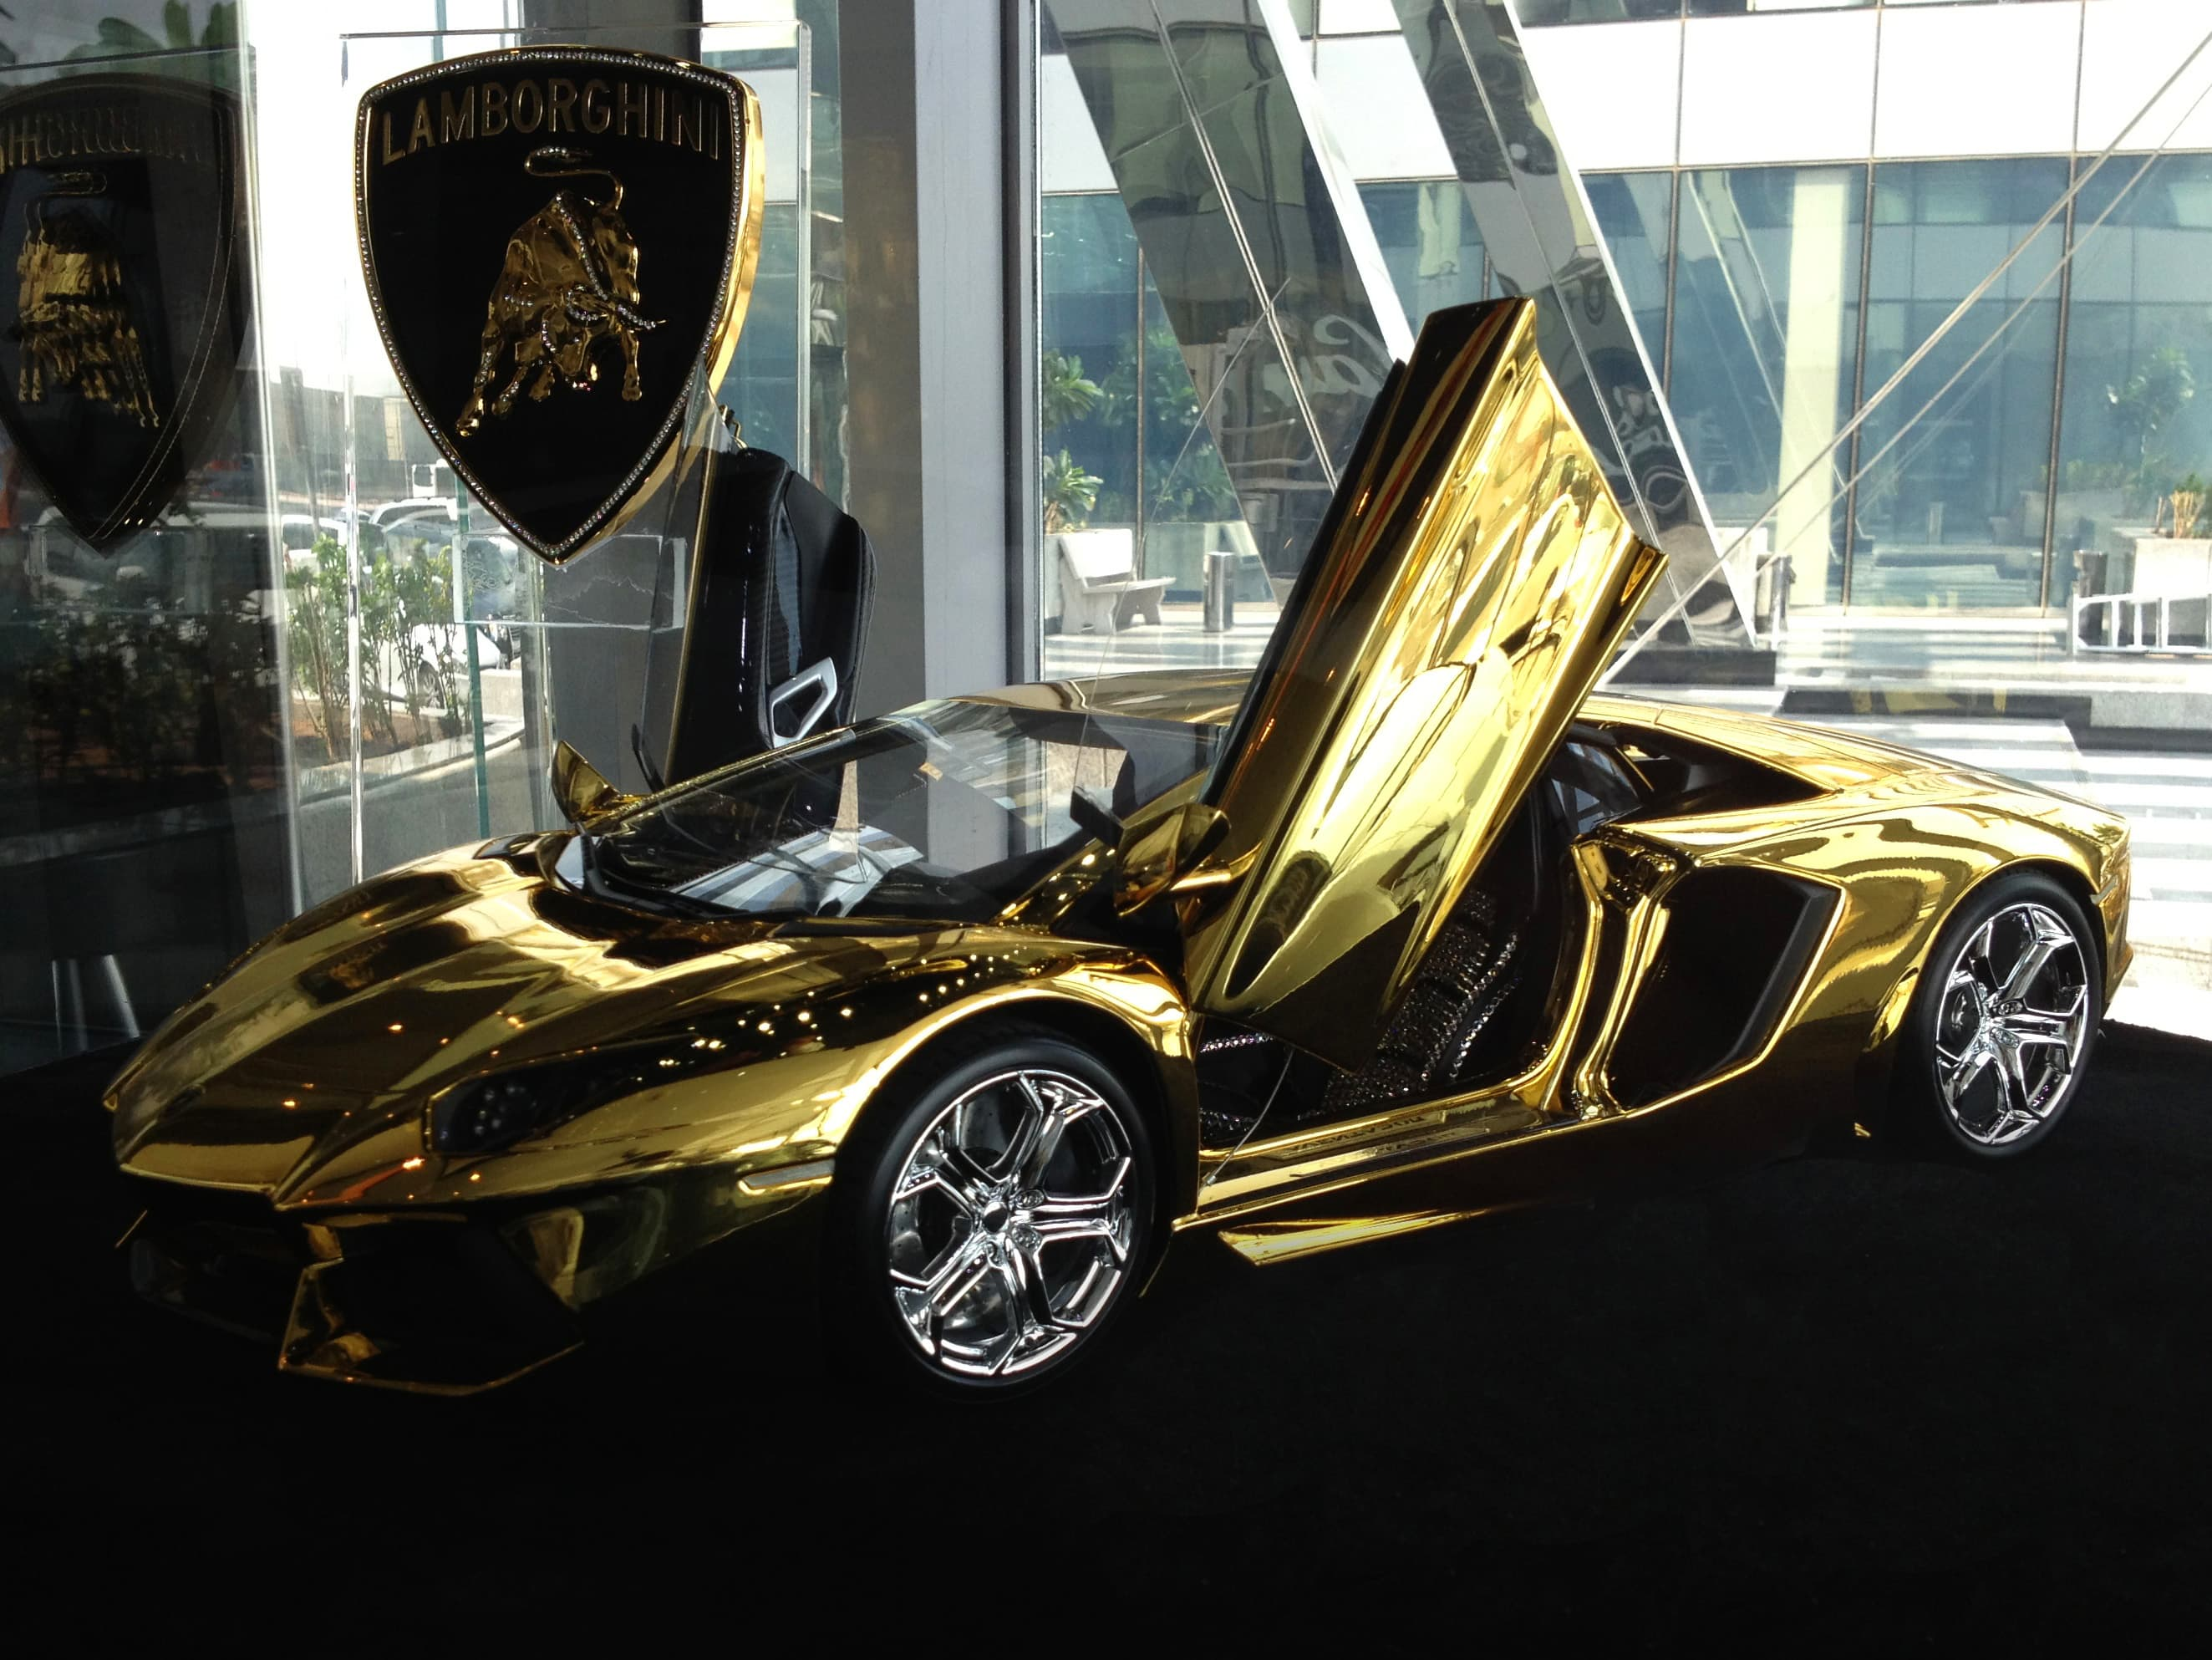 in classifieds for sale kent semi black cars auto lamborghini aventador coupe pistonheads used